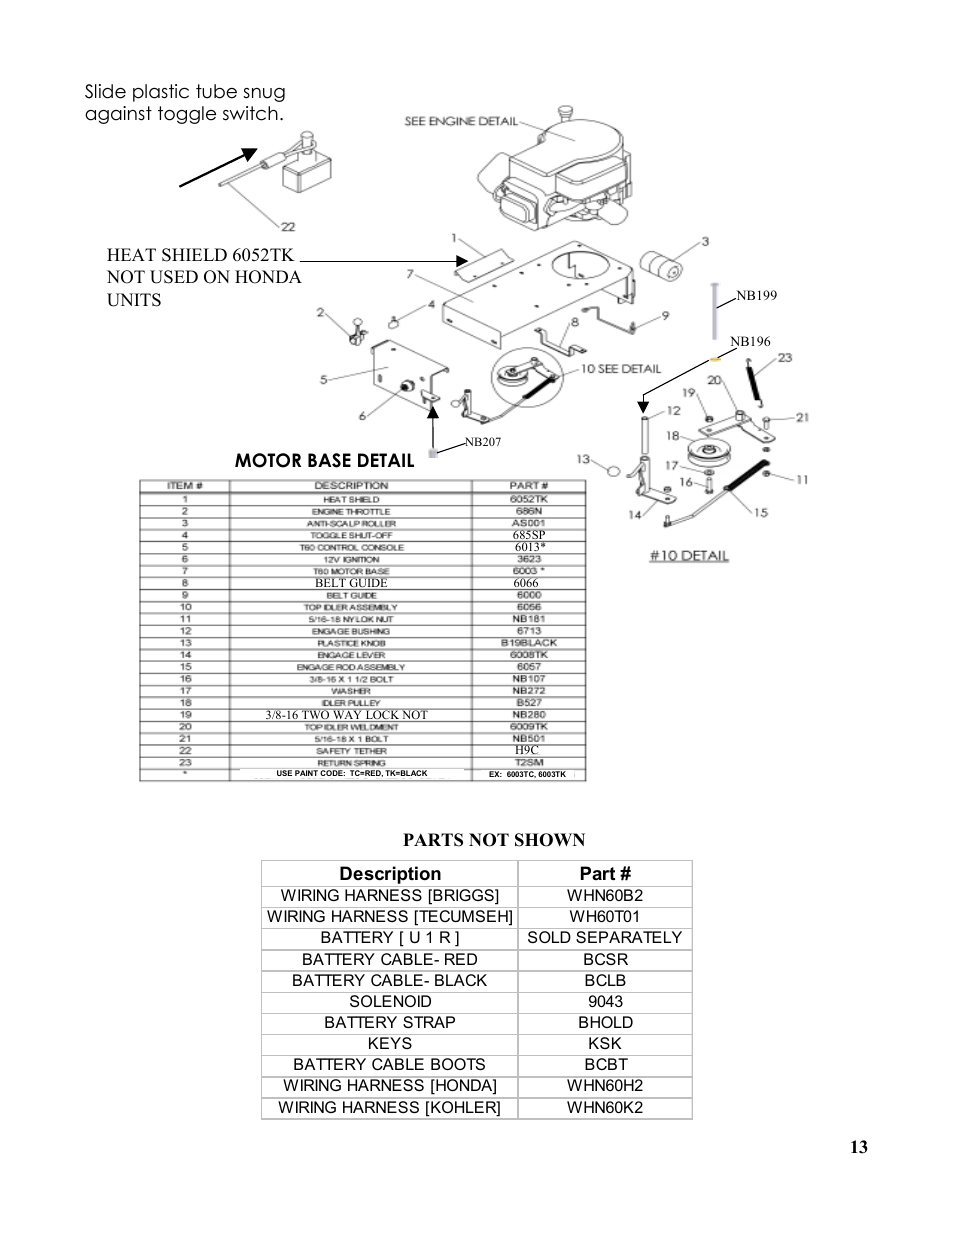 Swisher Wiring Harness Diagram Libraries Tecumseh Safety Key Diagrams T1360t User Manual Page 13 16 Also For T1360b1swisher